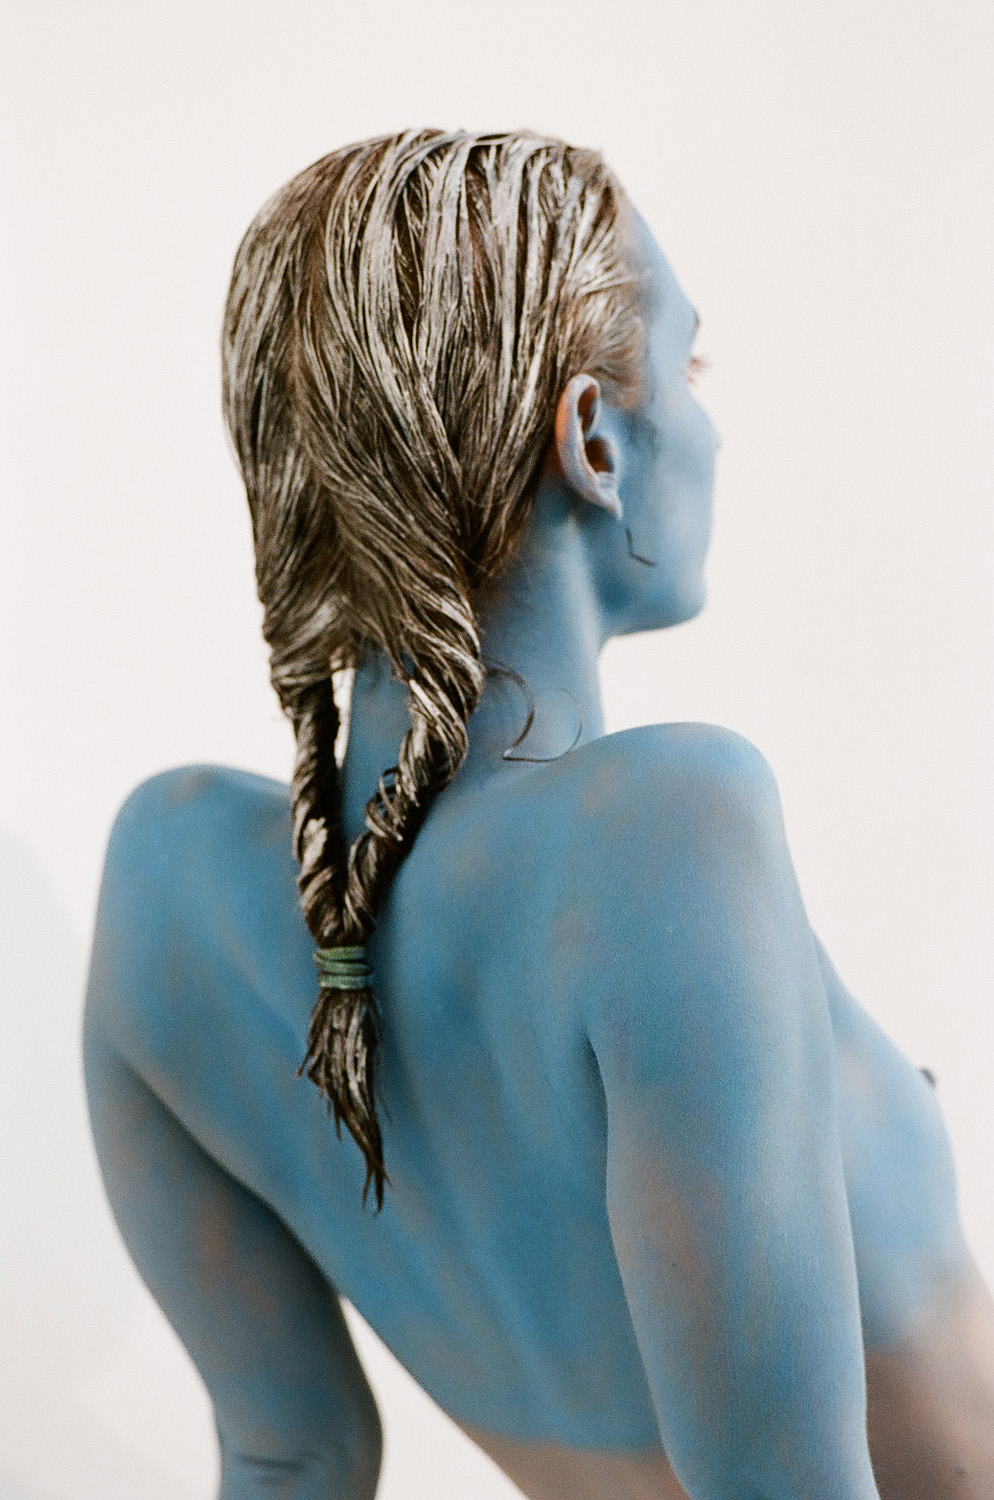 photo, photos, photography, photographer, photographers, woman, women, girl, back, breast, breasts, braid, braids, blue